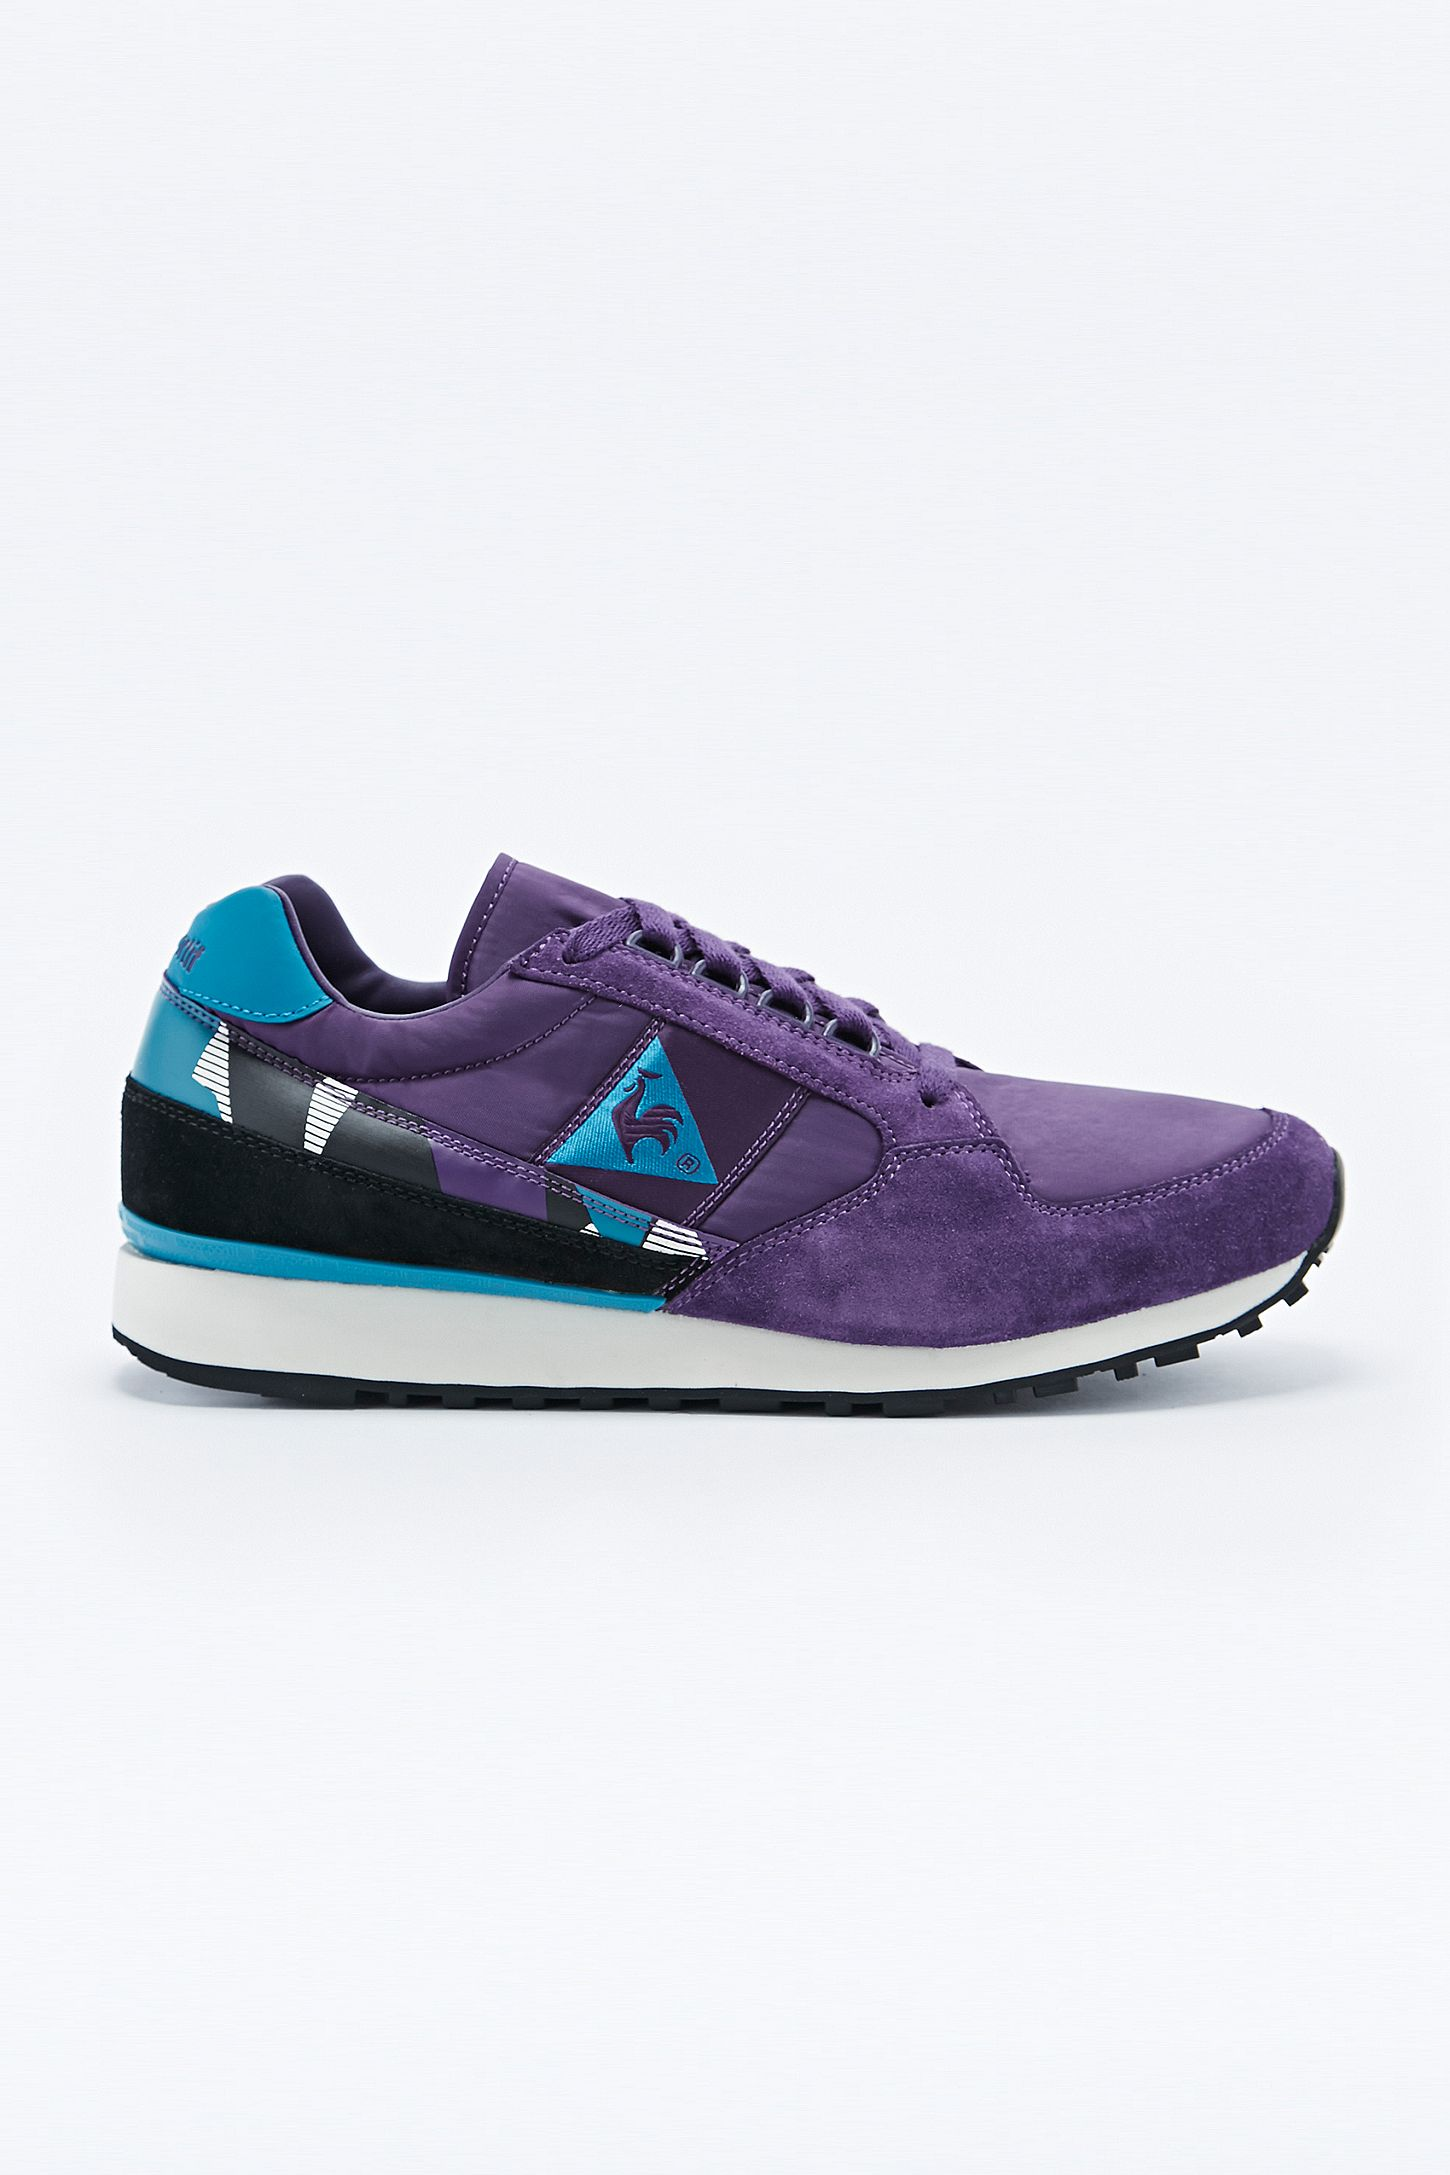 8b8b8890b93c Le Coq Sportif Eclat 90 Trainers in Purple. Click on image to zoom. Hover  to zoom. Double Tap to Zoom